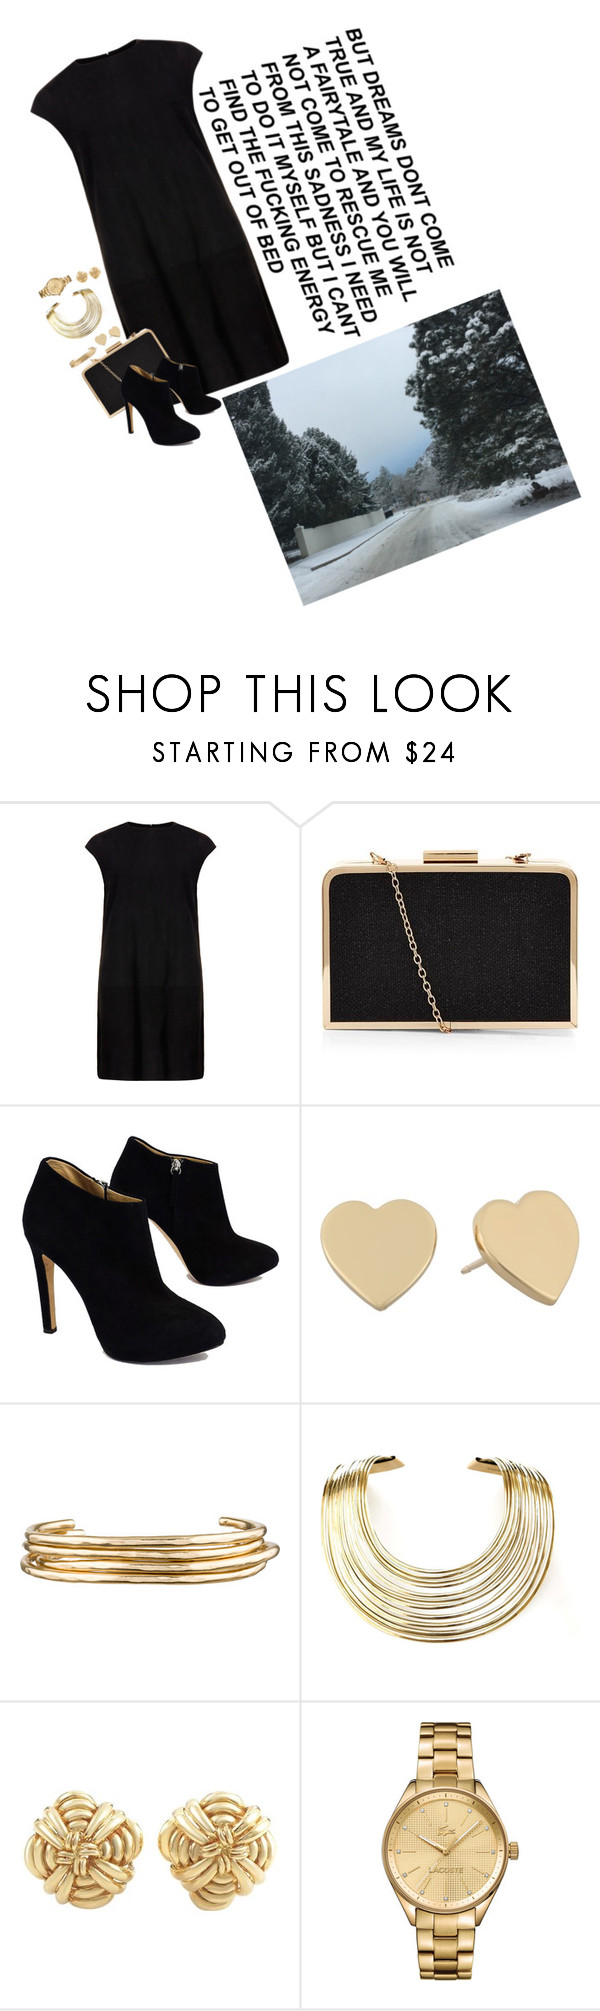 """""""I want my dreams to rescue me"""" by gina-dillon ❤ liked on Polyvore featuring MuuBaa, Giuseppe Zanotti, Kate Spade, Jennifer Fisher, Bisjoux, Tiffany & Co. and Lacoste"""